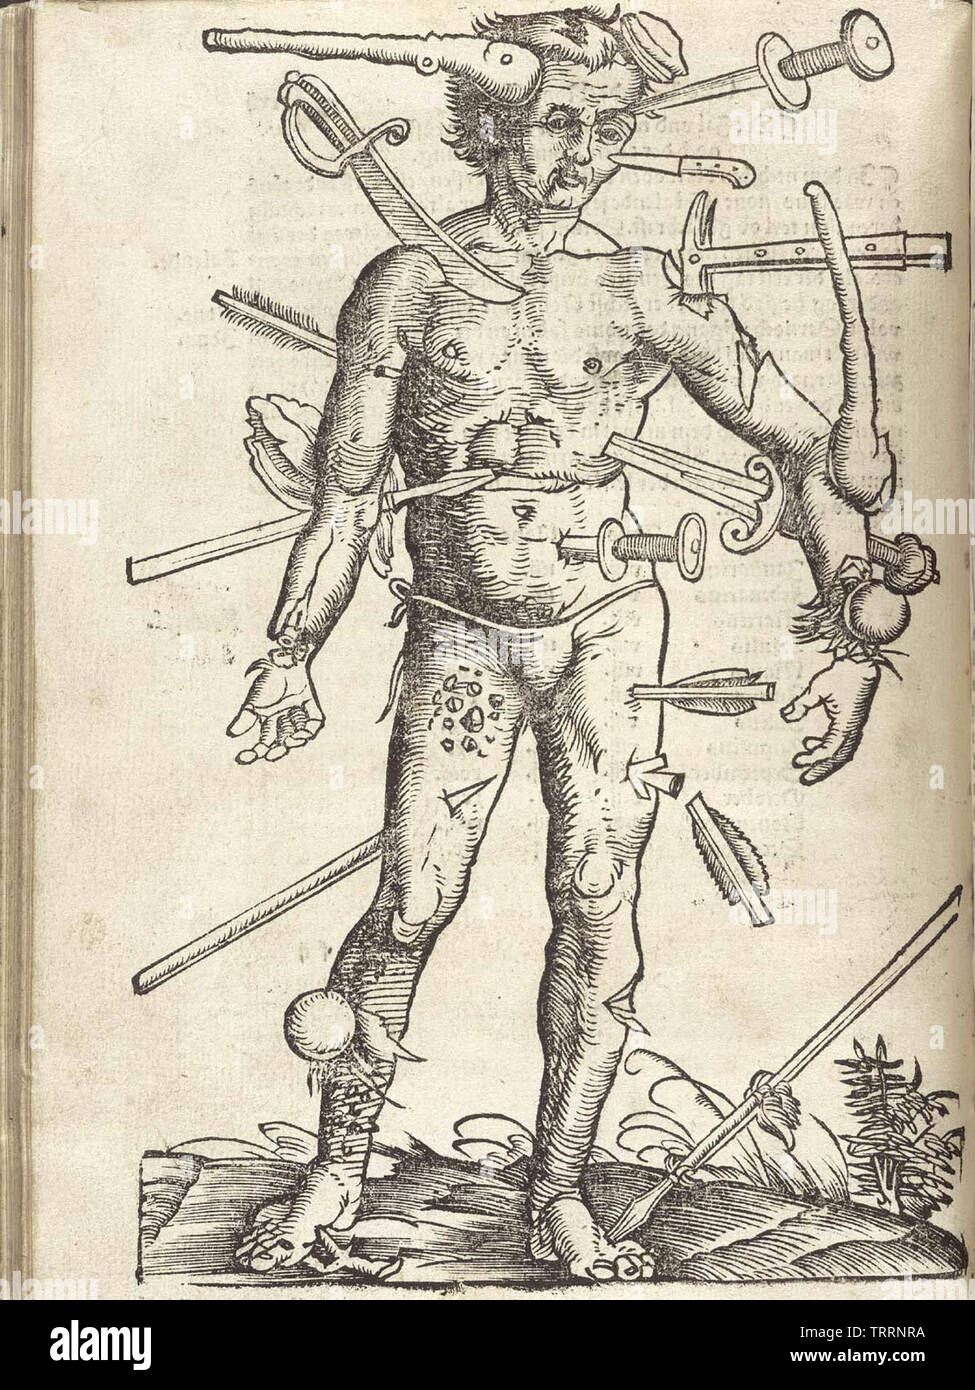 An illustration showing a variety of wounds from the Feldbuch der Wundarznei (Field manual for the treatment of wounds) by Hans von Gersdorff, (1517); illustration by Hans Wechtlin. - Stock Image